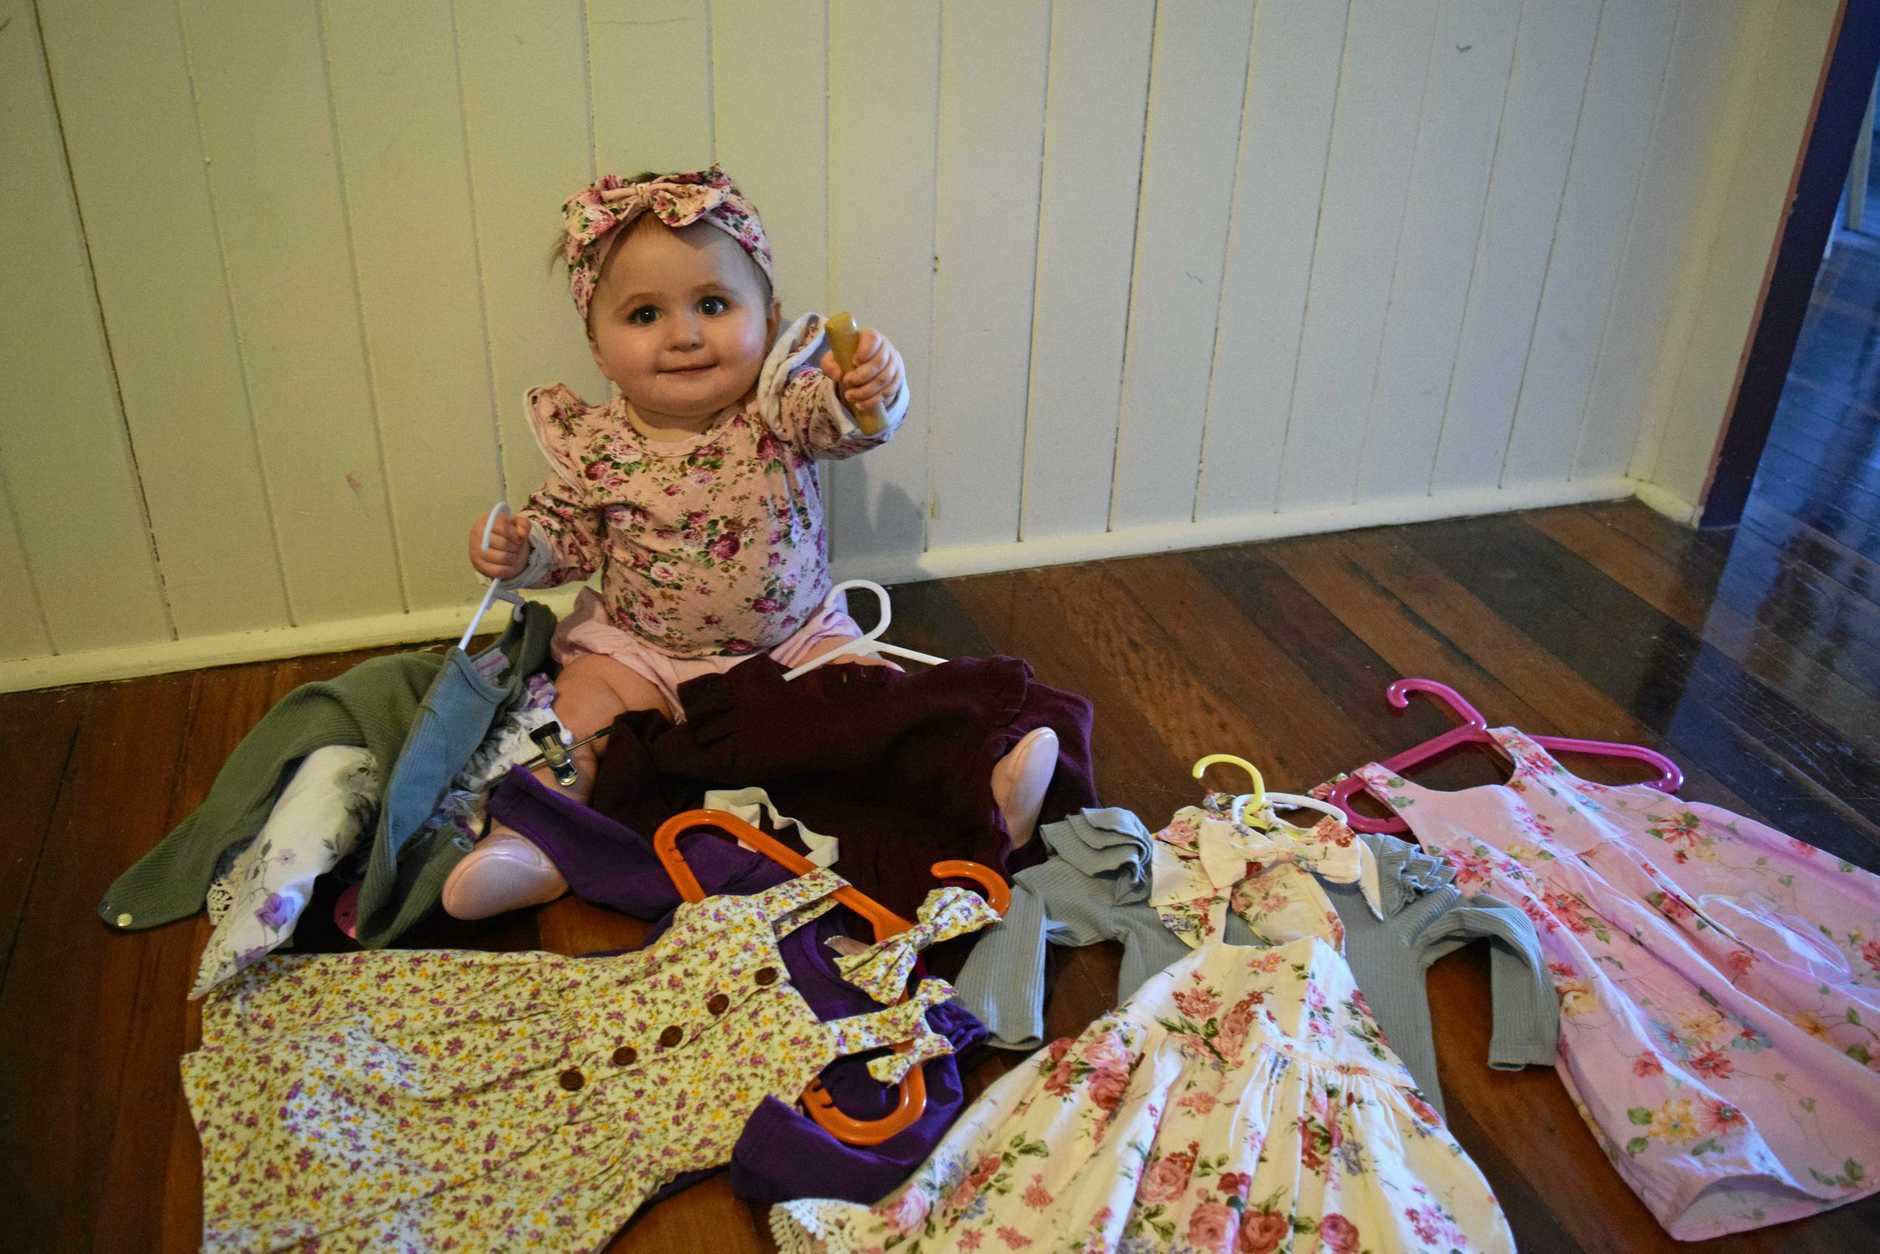 Maryborough's 11-month-old Iris Rankin, with just a few of the many outfits she has, who won the Fraser Coast Chronicle best dressed baby.